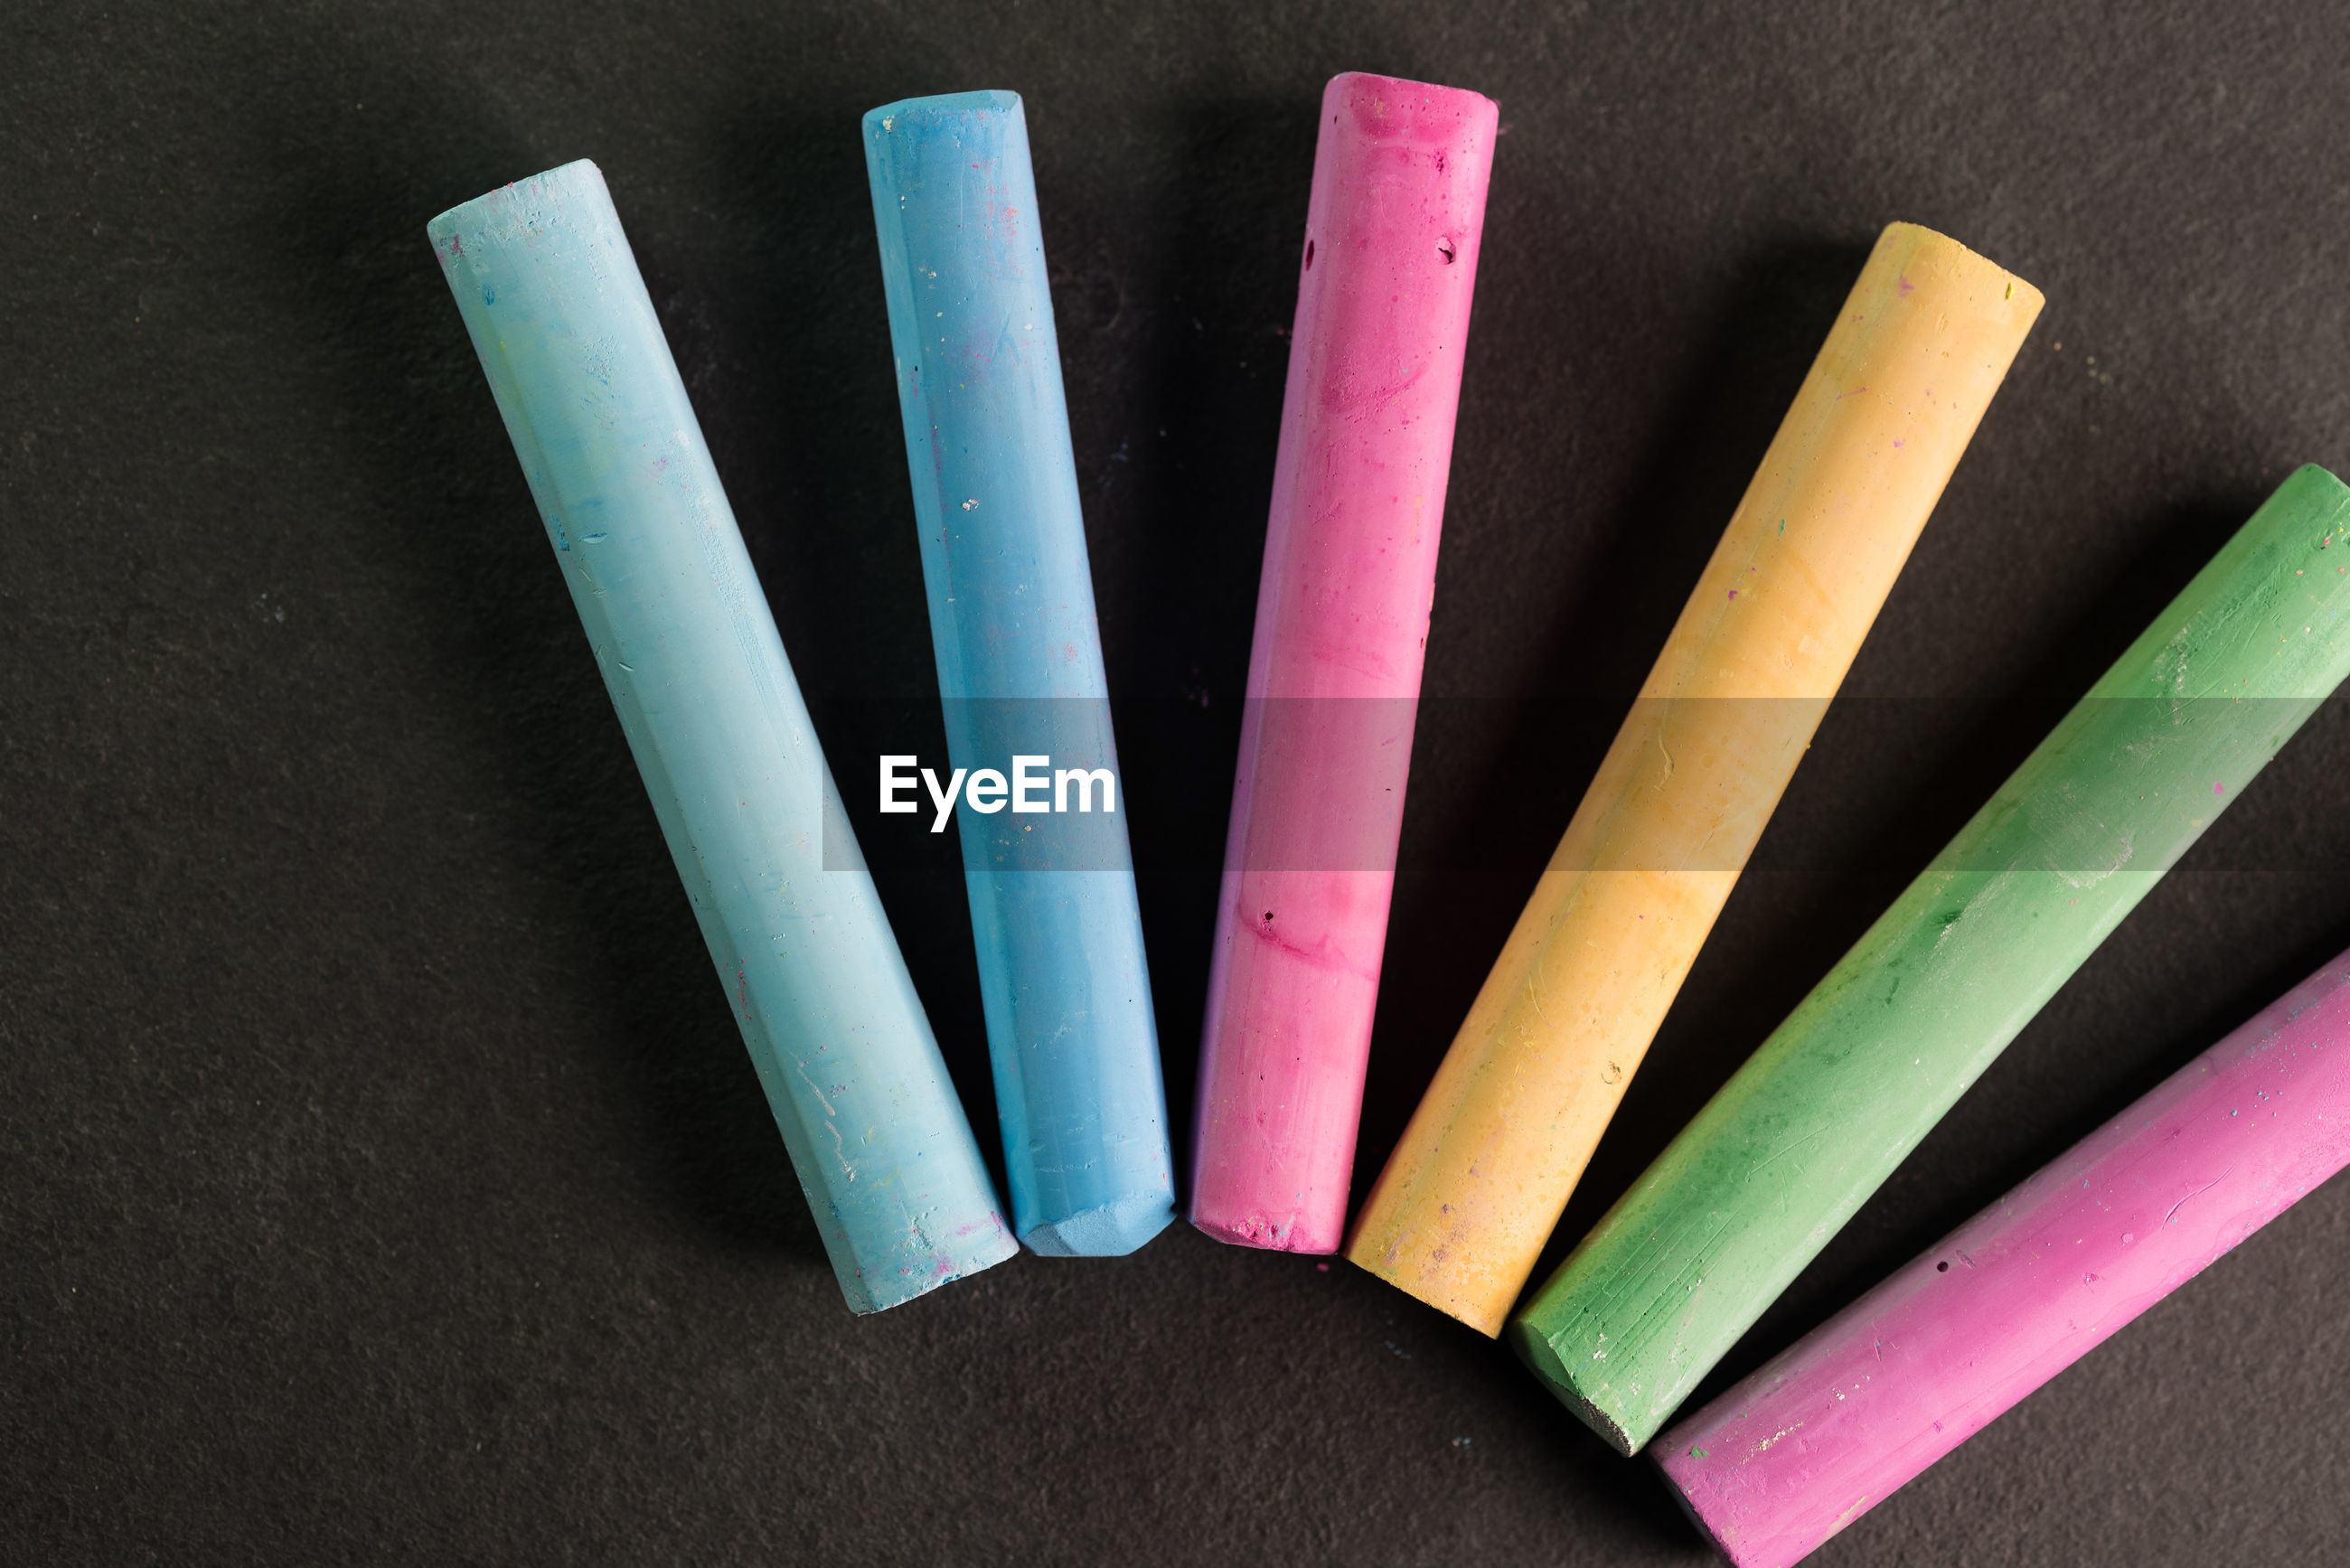 Close-up of colorful chalks arranged on table